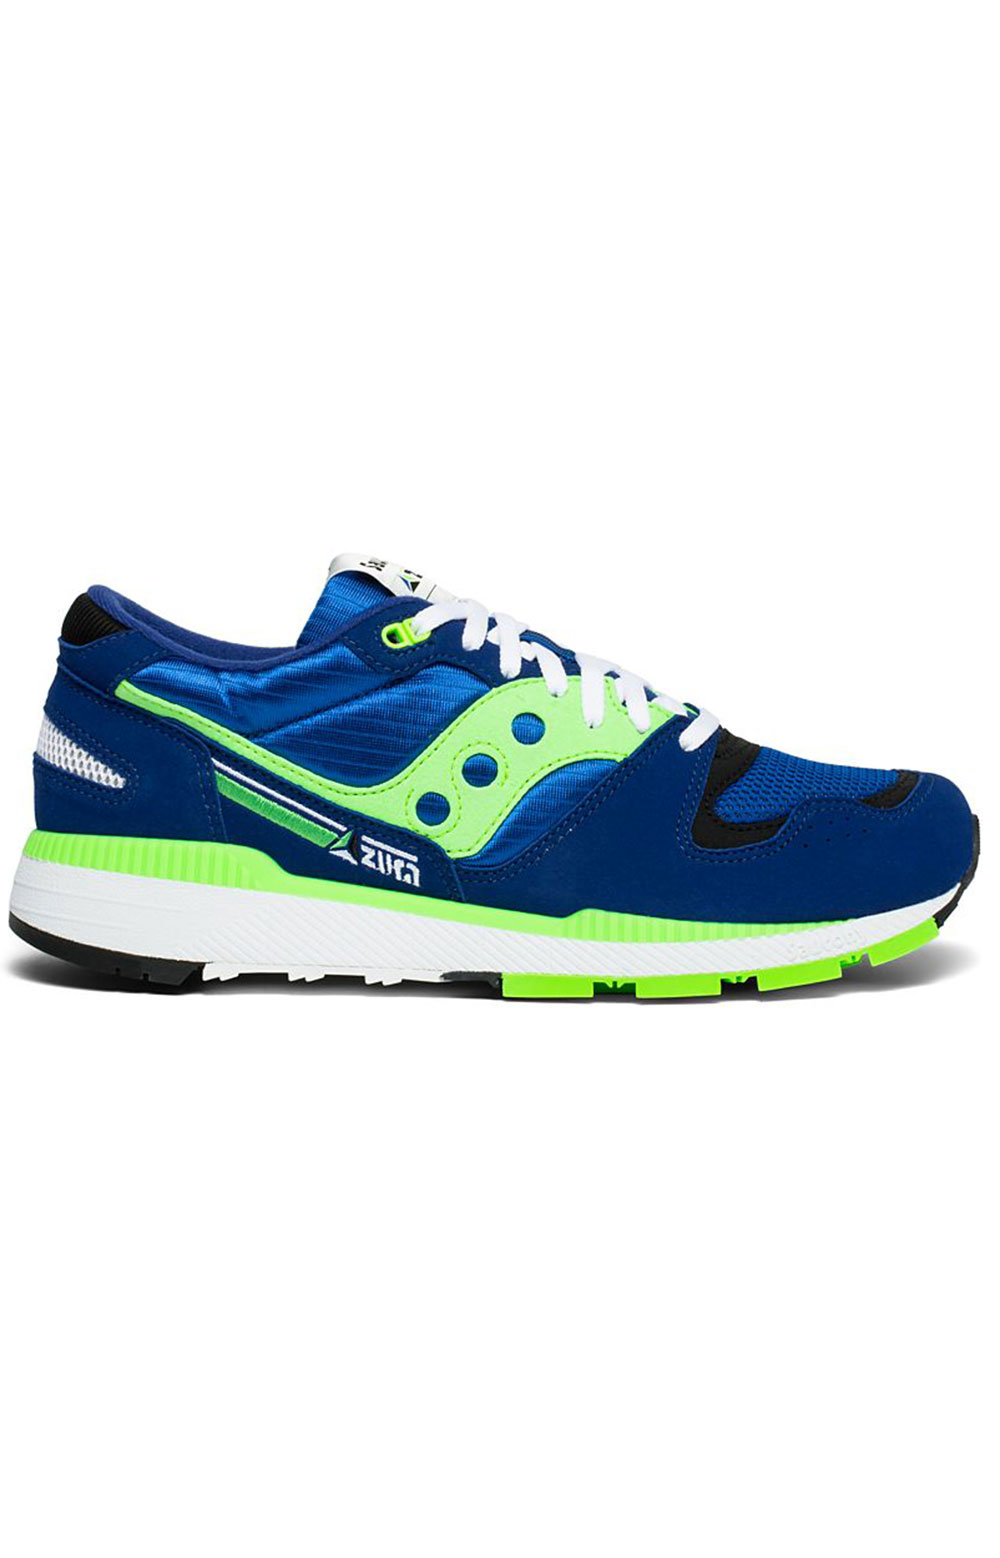 (S70437-13) Azura Shoe - Blue/Green